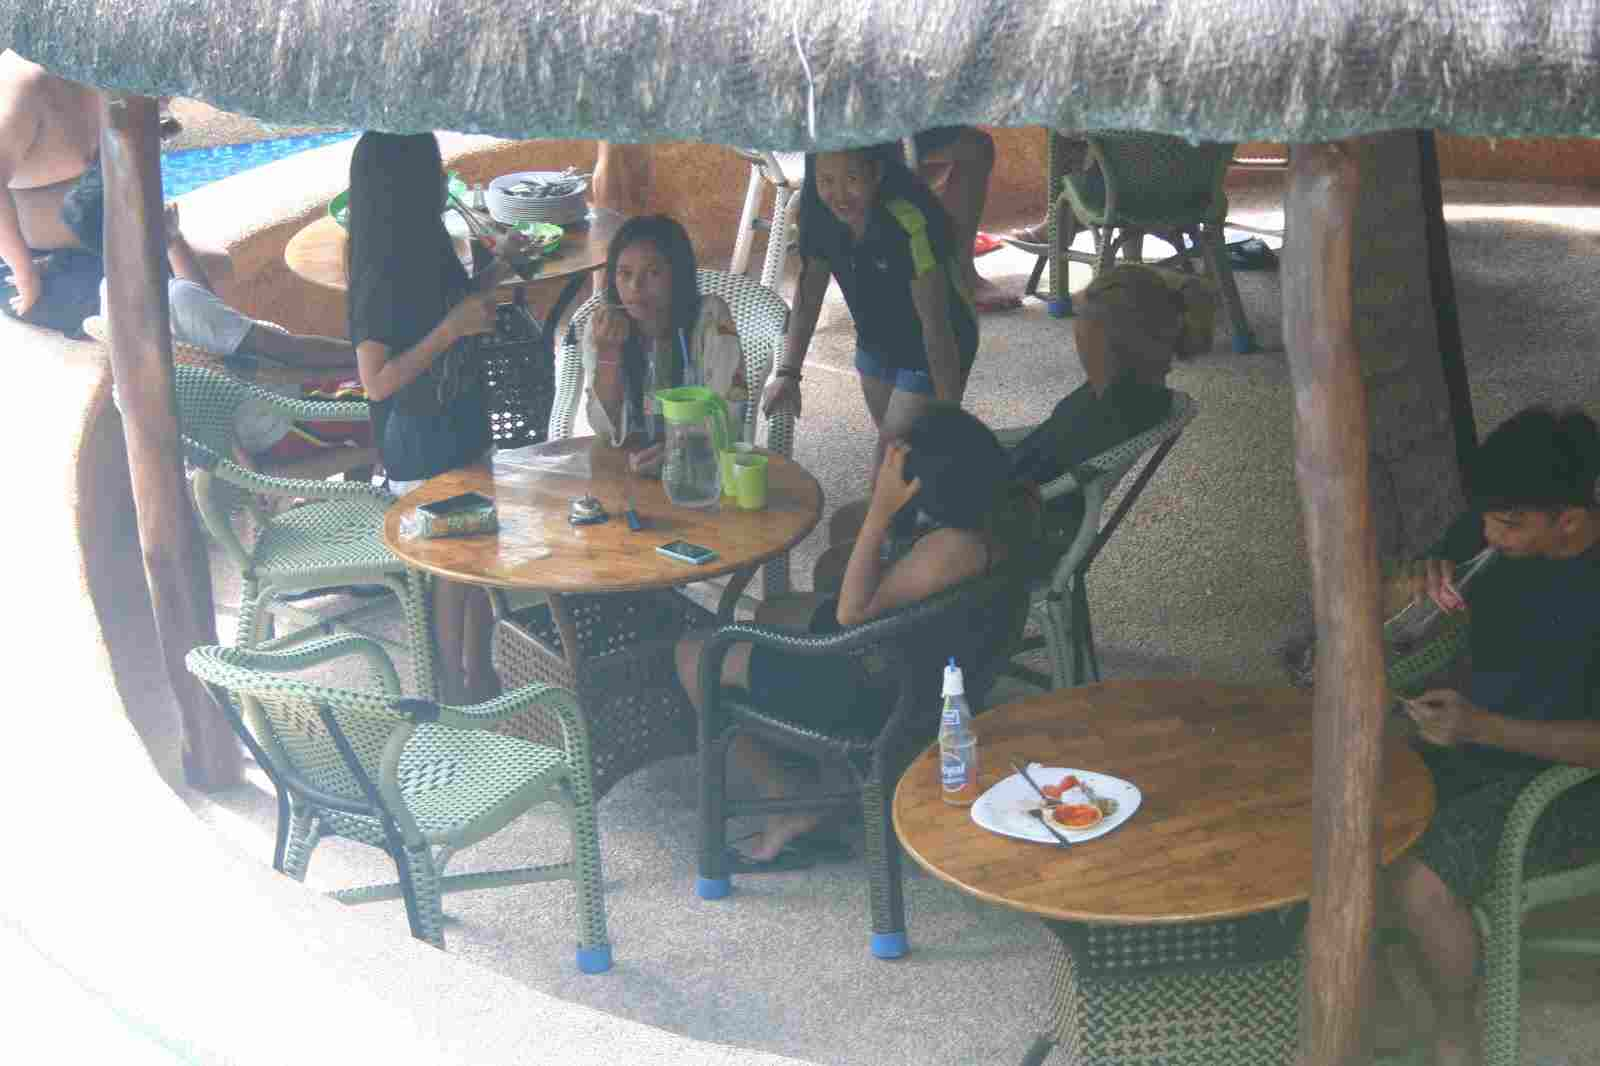 budget cheap resort in panglao white island bohol philippines in 2018, best travel summer vacation tour, panglao chocolate hills resort dining area, eating lunch